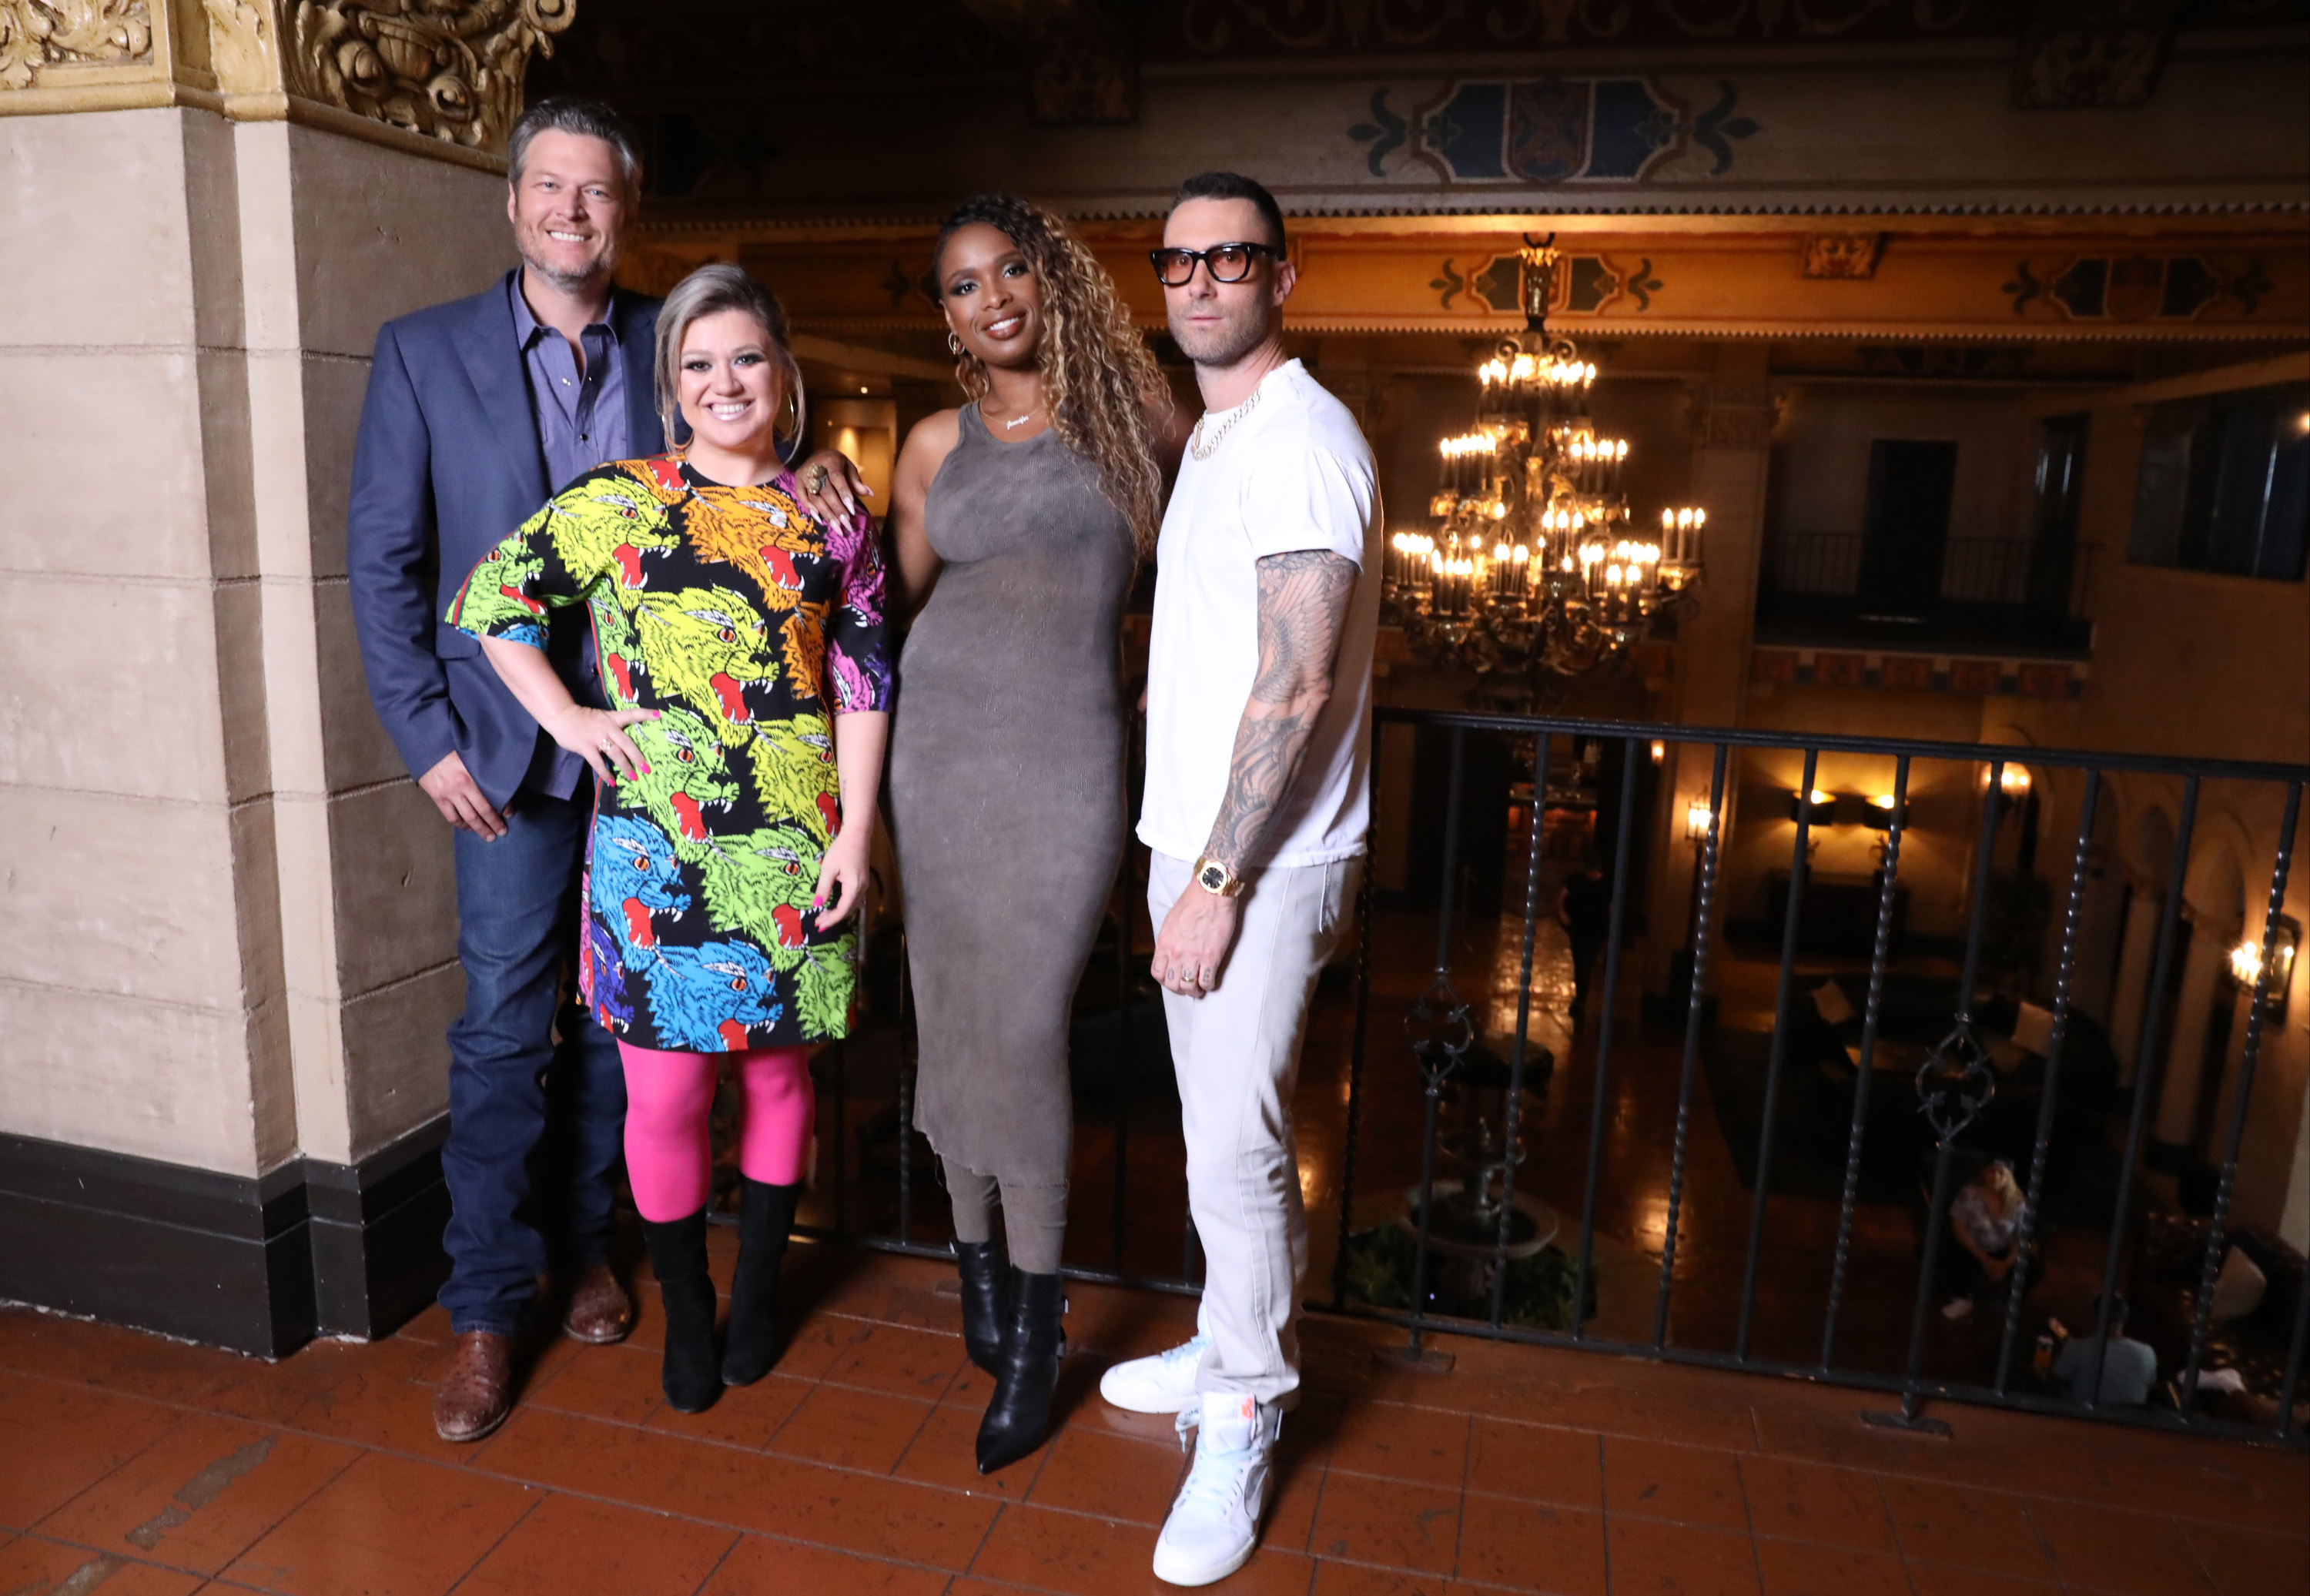 Blake Shelton, Kelly Clarkson, Jennifer Hudson and Adam Levine are pictured at the Hollywood Roosevelt Hotel in Hollywood, CA on Aug. 7, 2018.